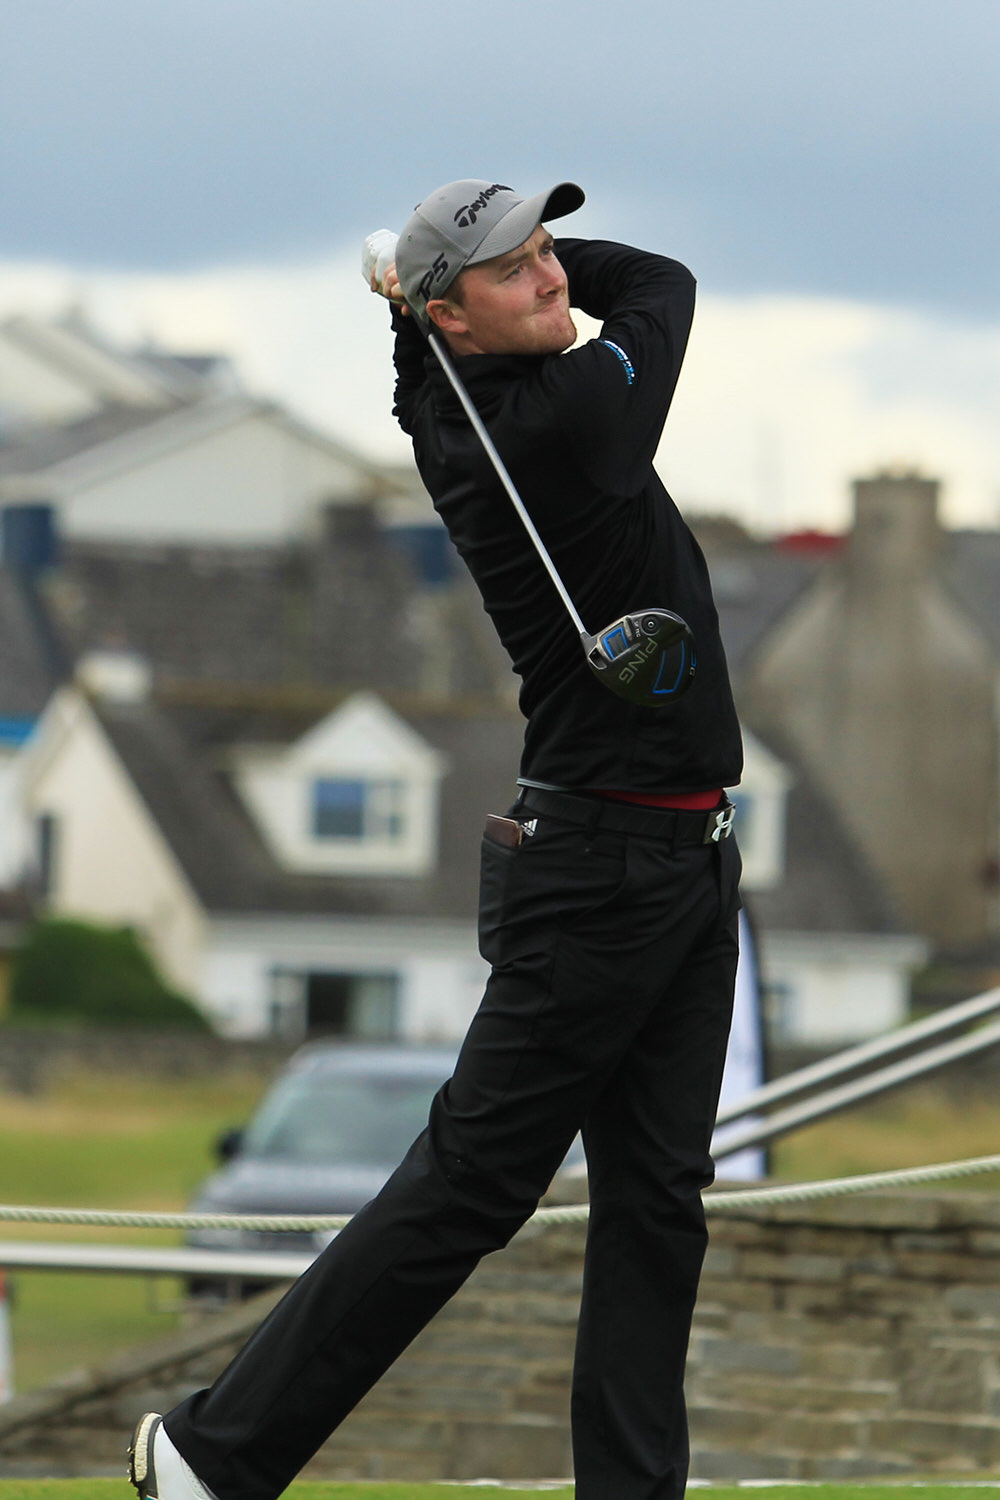 Eugene Smith (Laytown Betystown) teeing of in the third round of the South of Ireland Championship at Lahinch.  Saturday 28th July 2018.Picture: Nial O'Shea